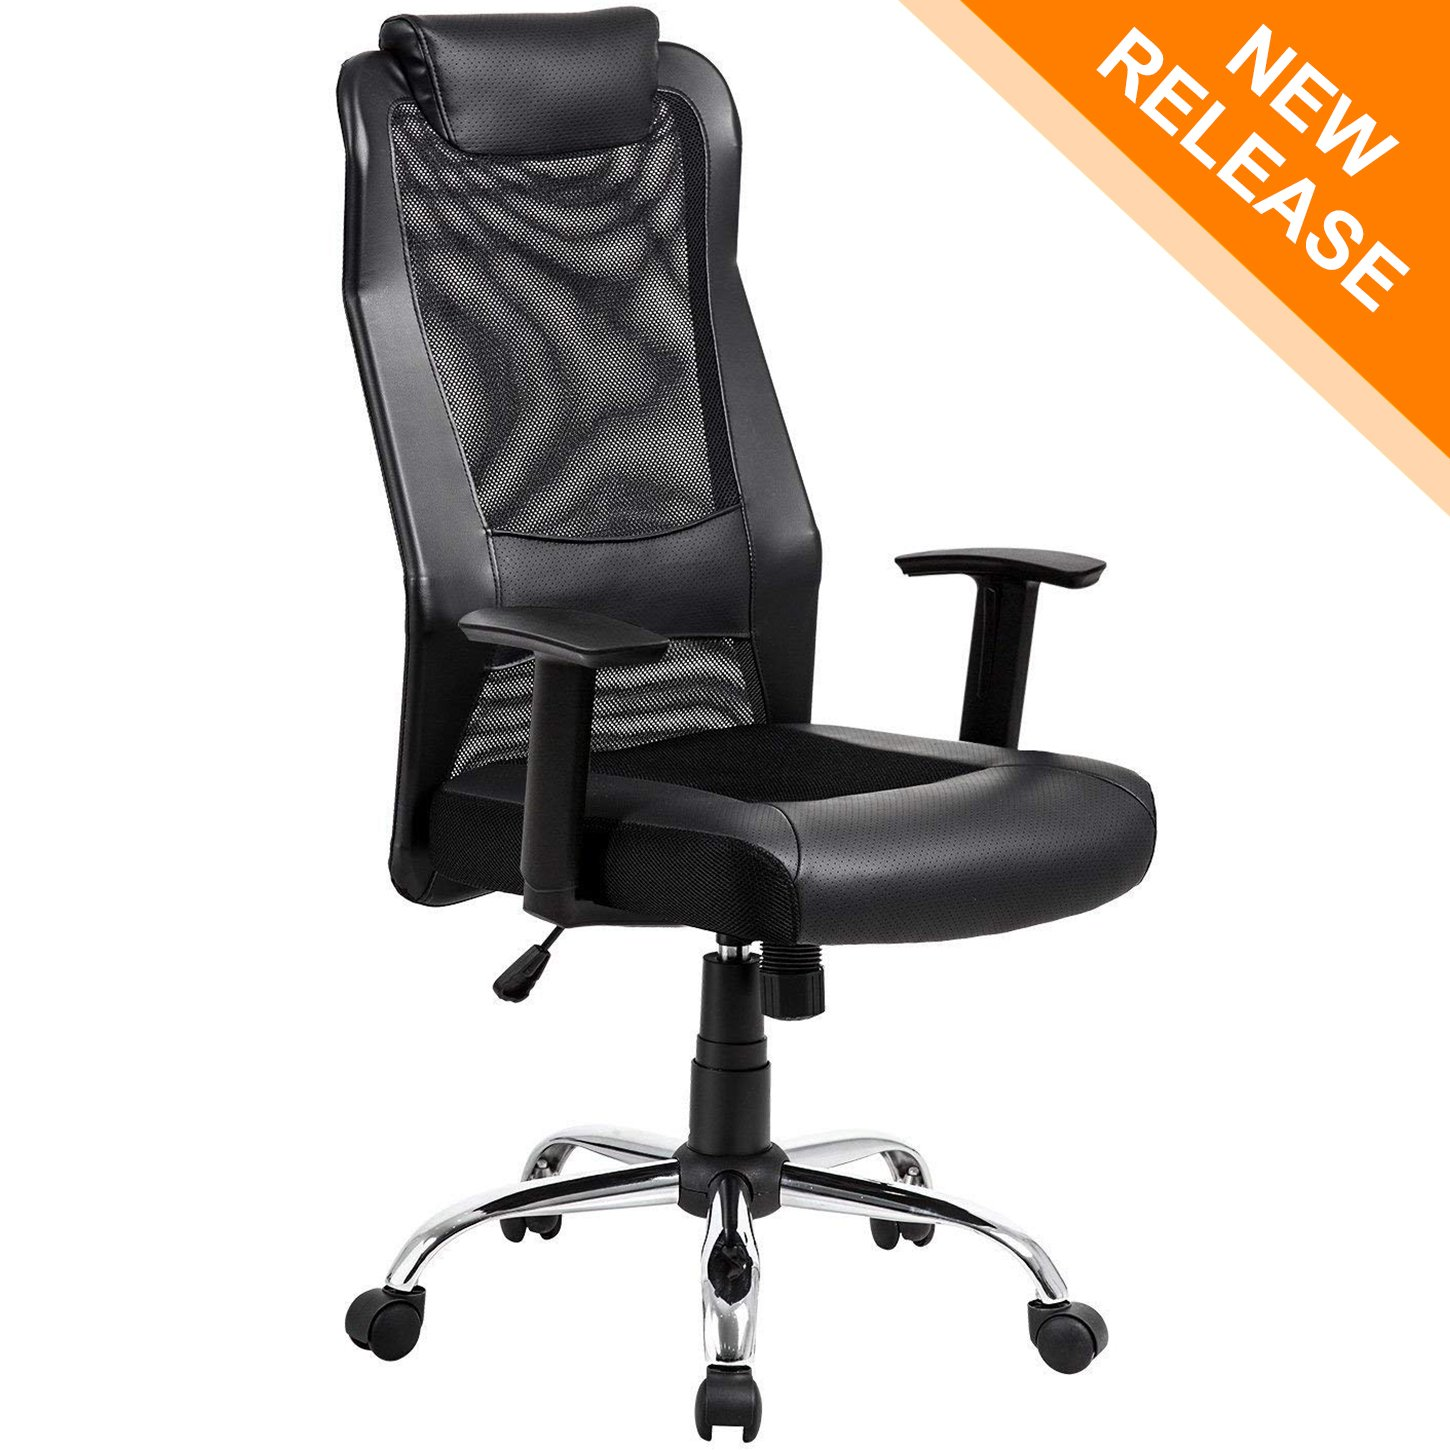 KADIRYA High Back Breathable Mesh Office Chair Lumbar Support Computer Desk Task Executive Ergonomic Swivel Chair with Leather Padded Headrest and Seat Adjustable Armrests BIFIMA Certification